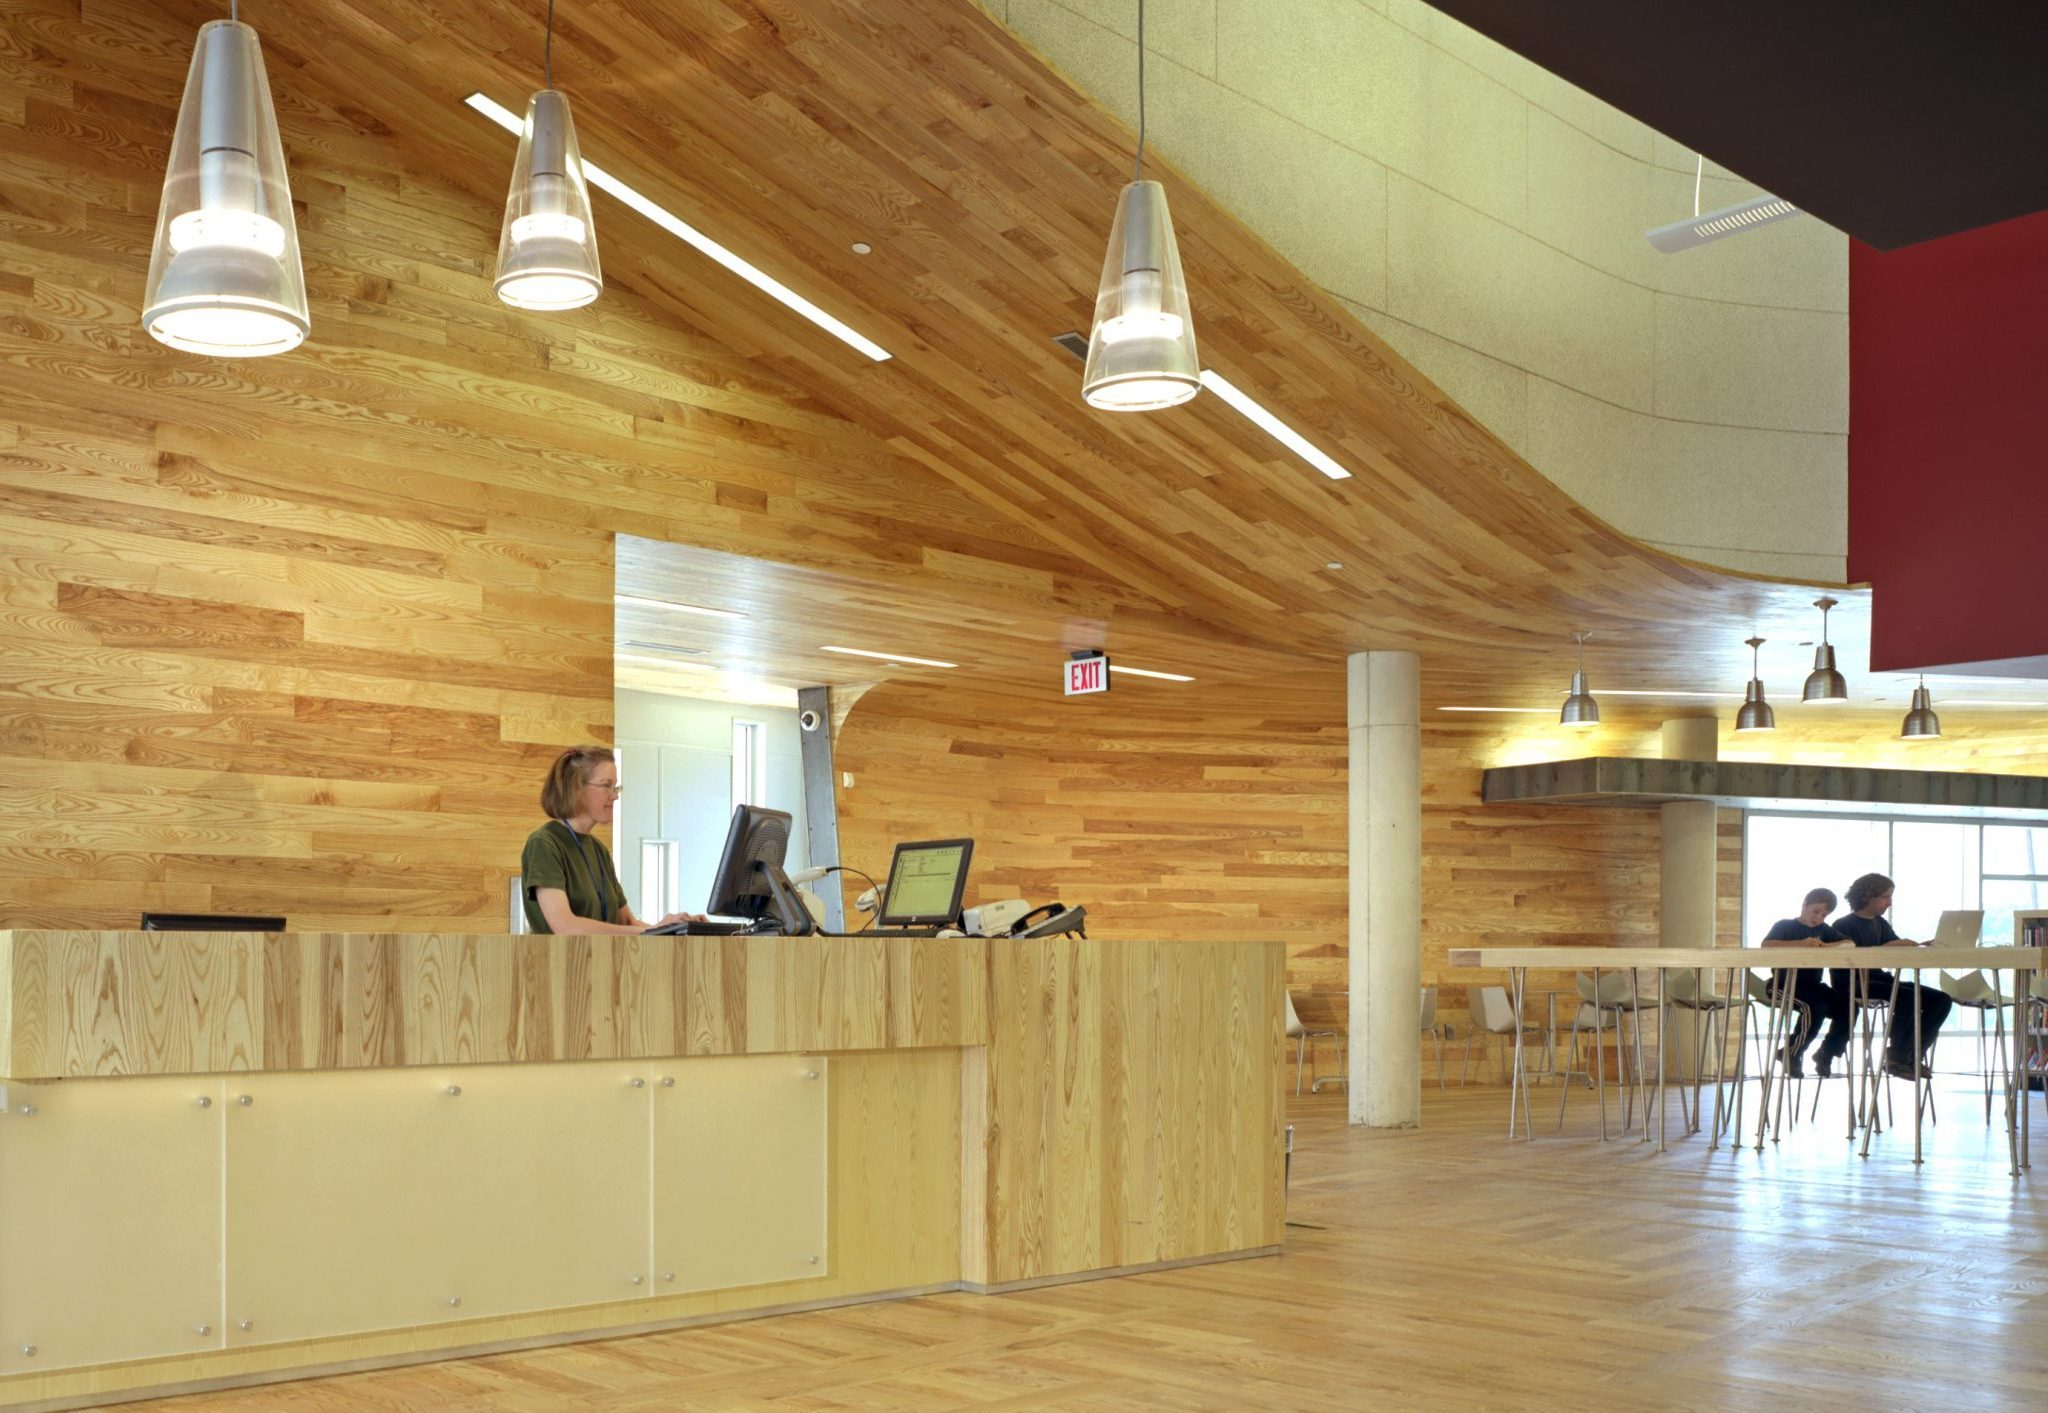 Interior view of ash wood librarian desk at Traverwood Branch of Ann Arbor District Library System Project in Michigan Architecture Interior Design and Sustainable Design